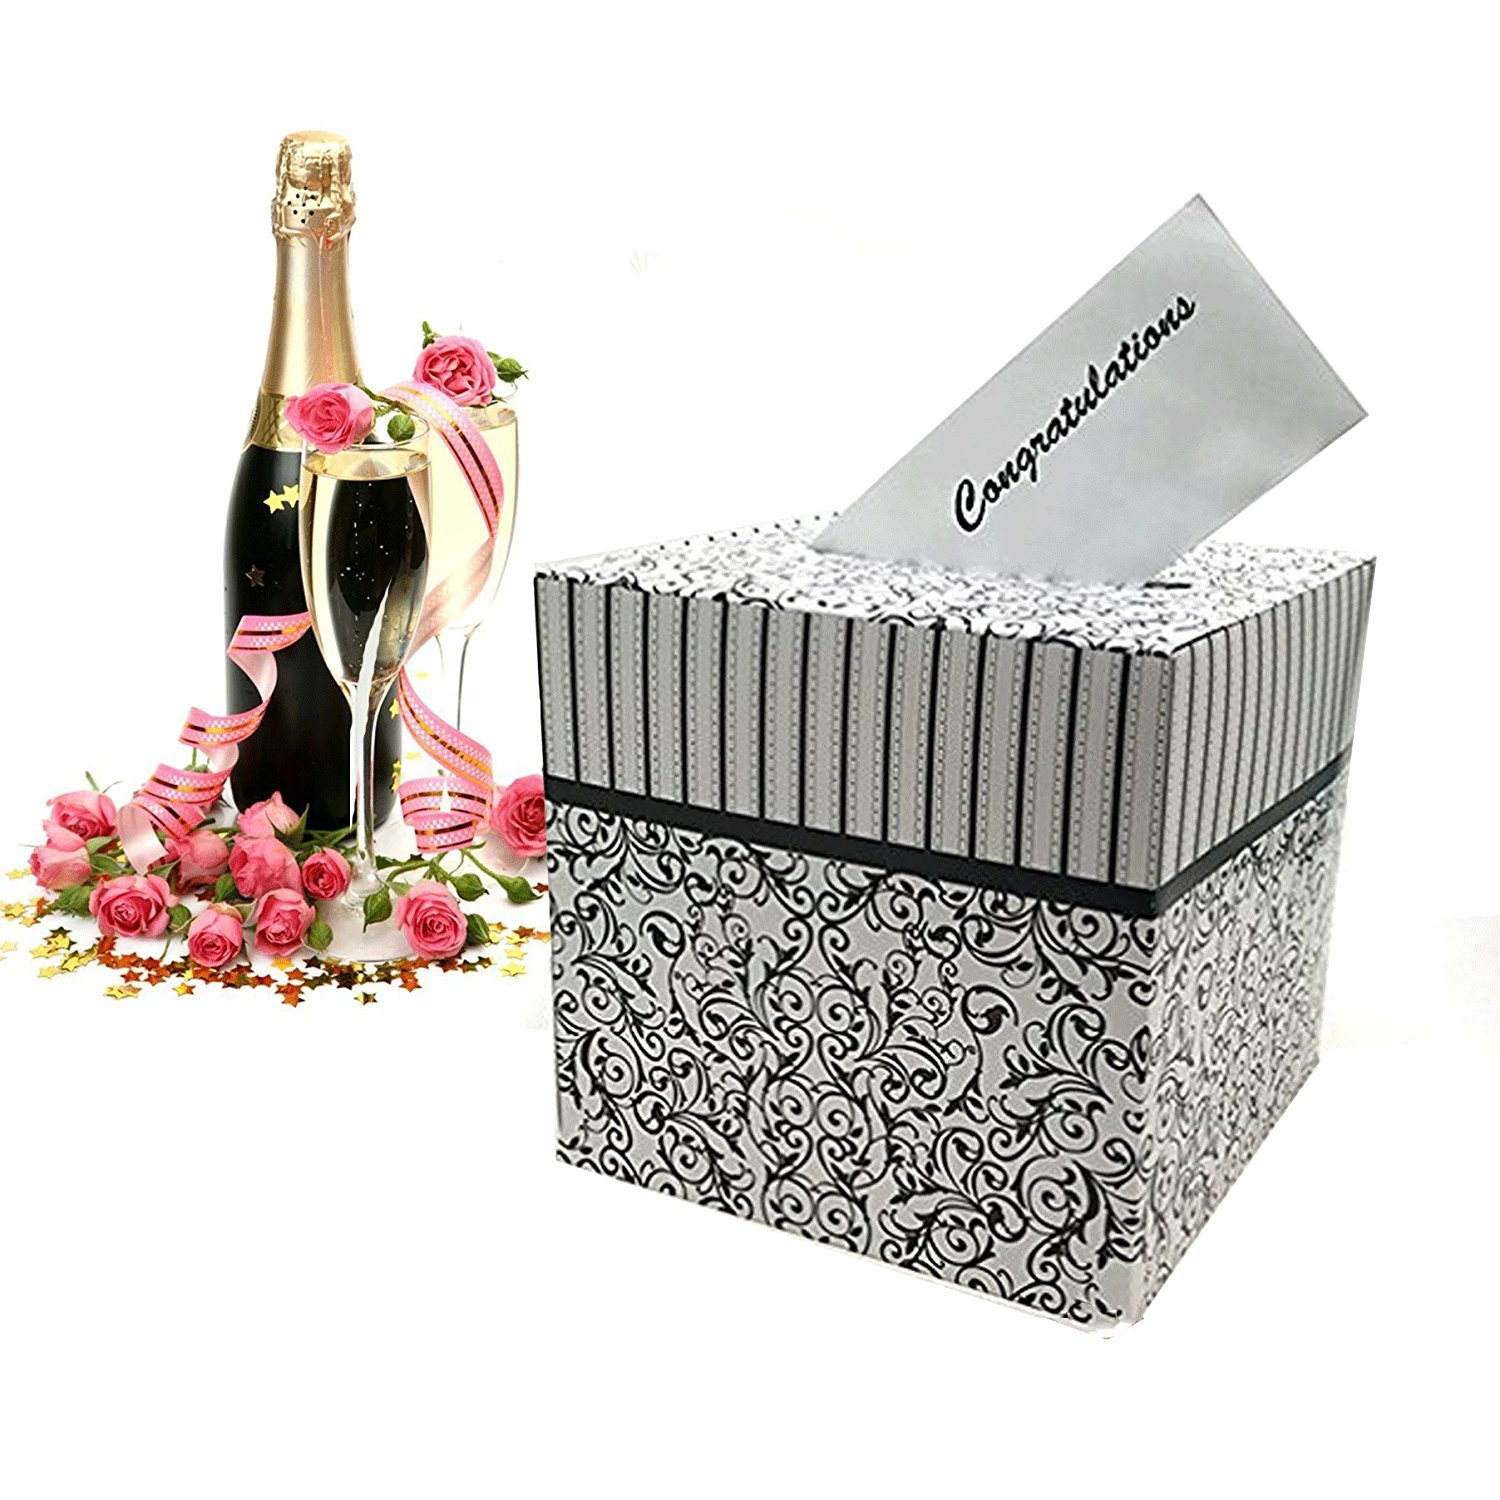 Wedding Card Boxes For Receptions: Wedding Gift Box Hotel Reception Wishing Wells Envelope